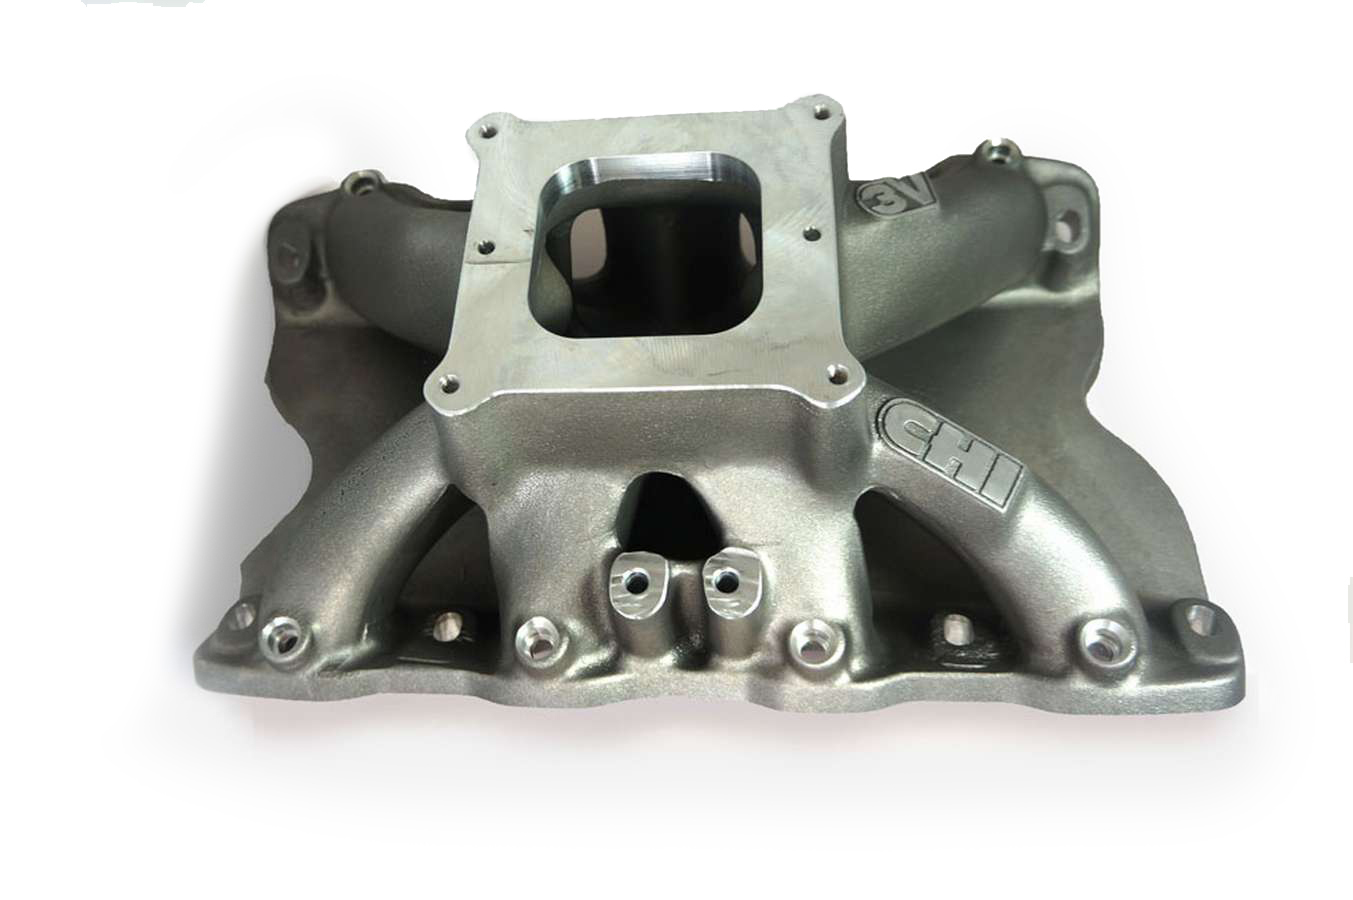 Cylinder Head Innovations INT3V185H8.2W Intake Manifold, 3V, Square Bore, 8.200 in Deck Height, Aluminum, Natural, Small Block Ford, Each